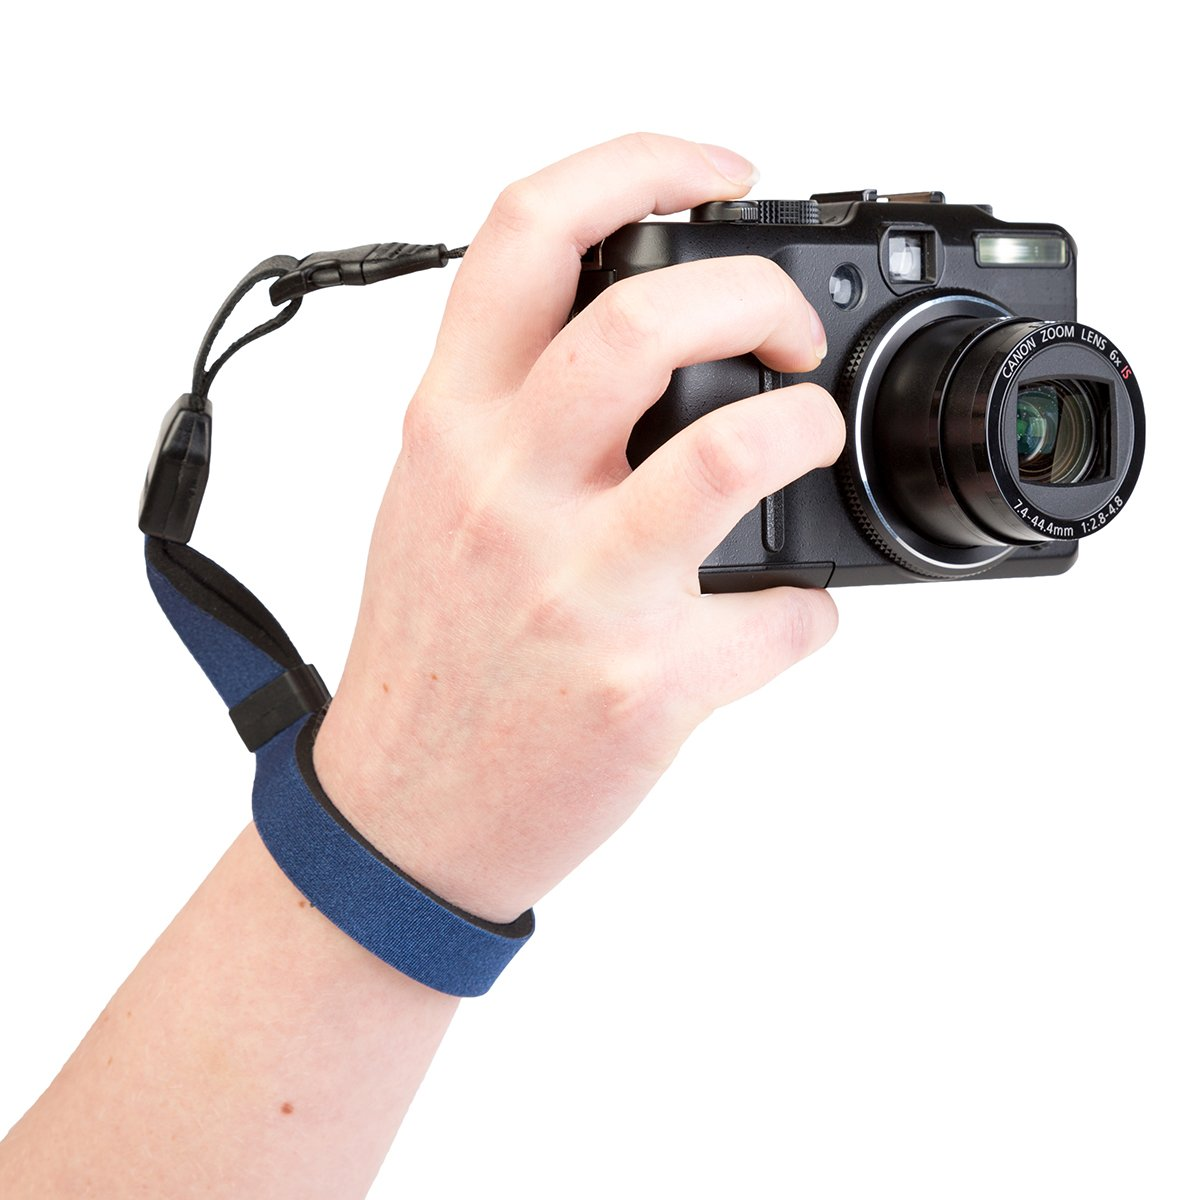 OP/TECH Cam Strap QD for Compact Cameras and Binoculars - Navy